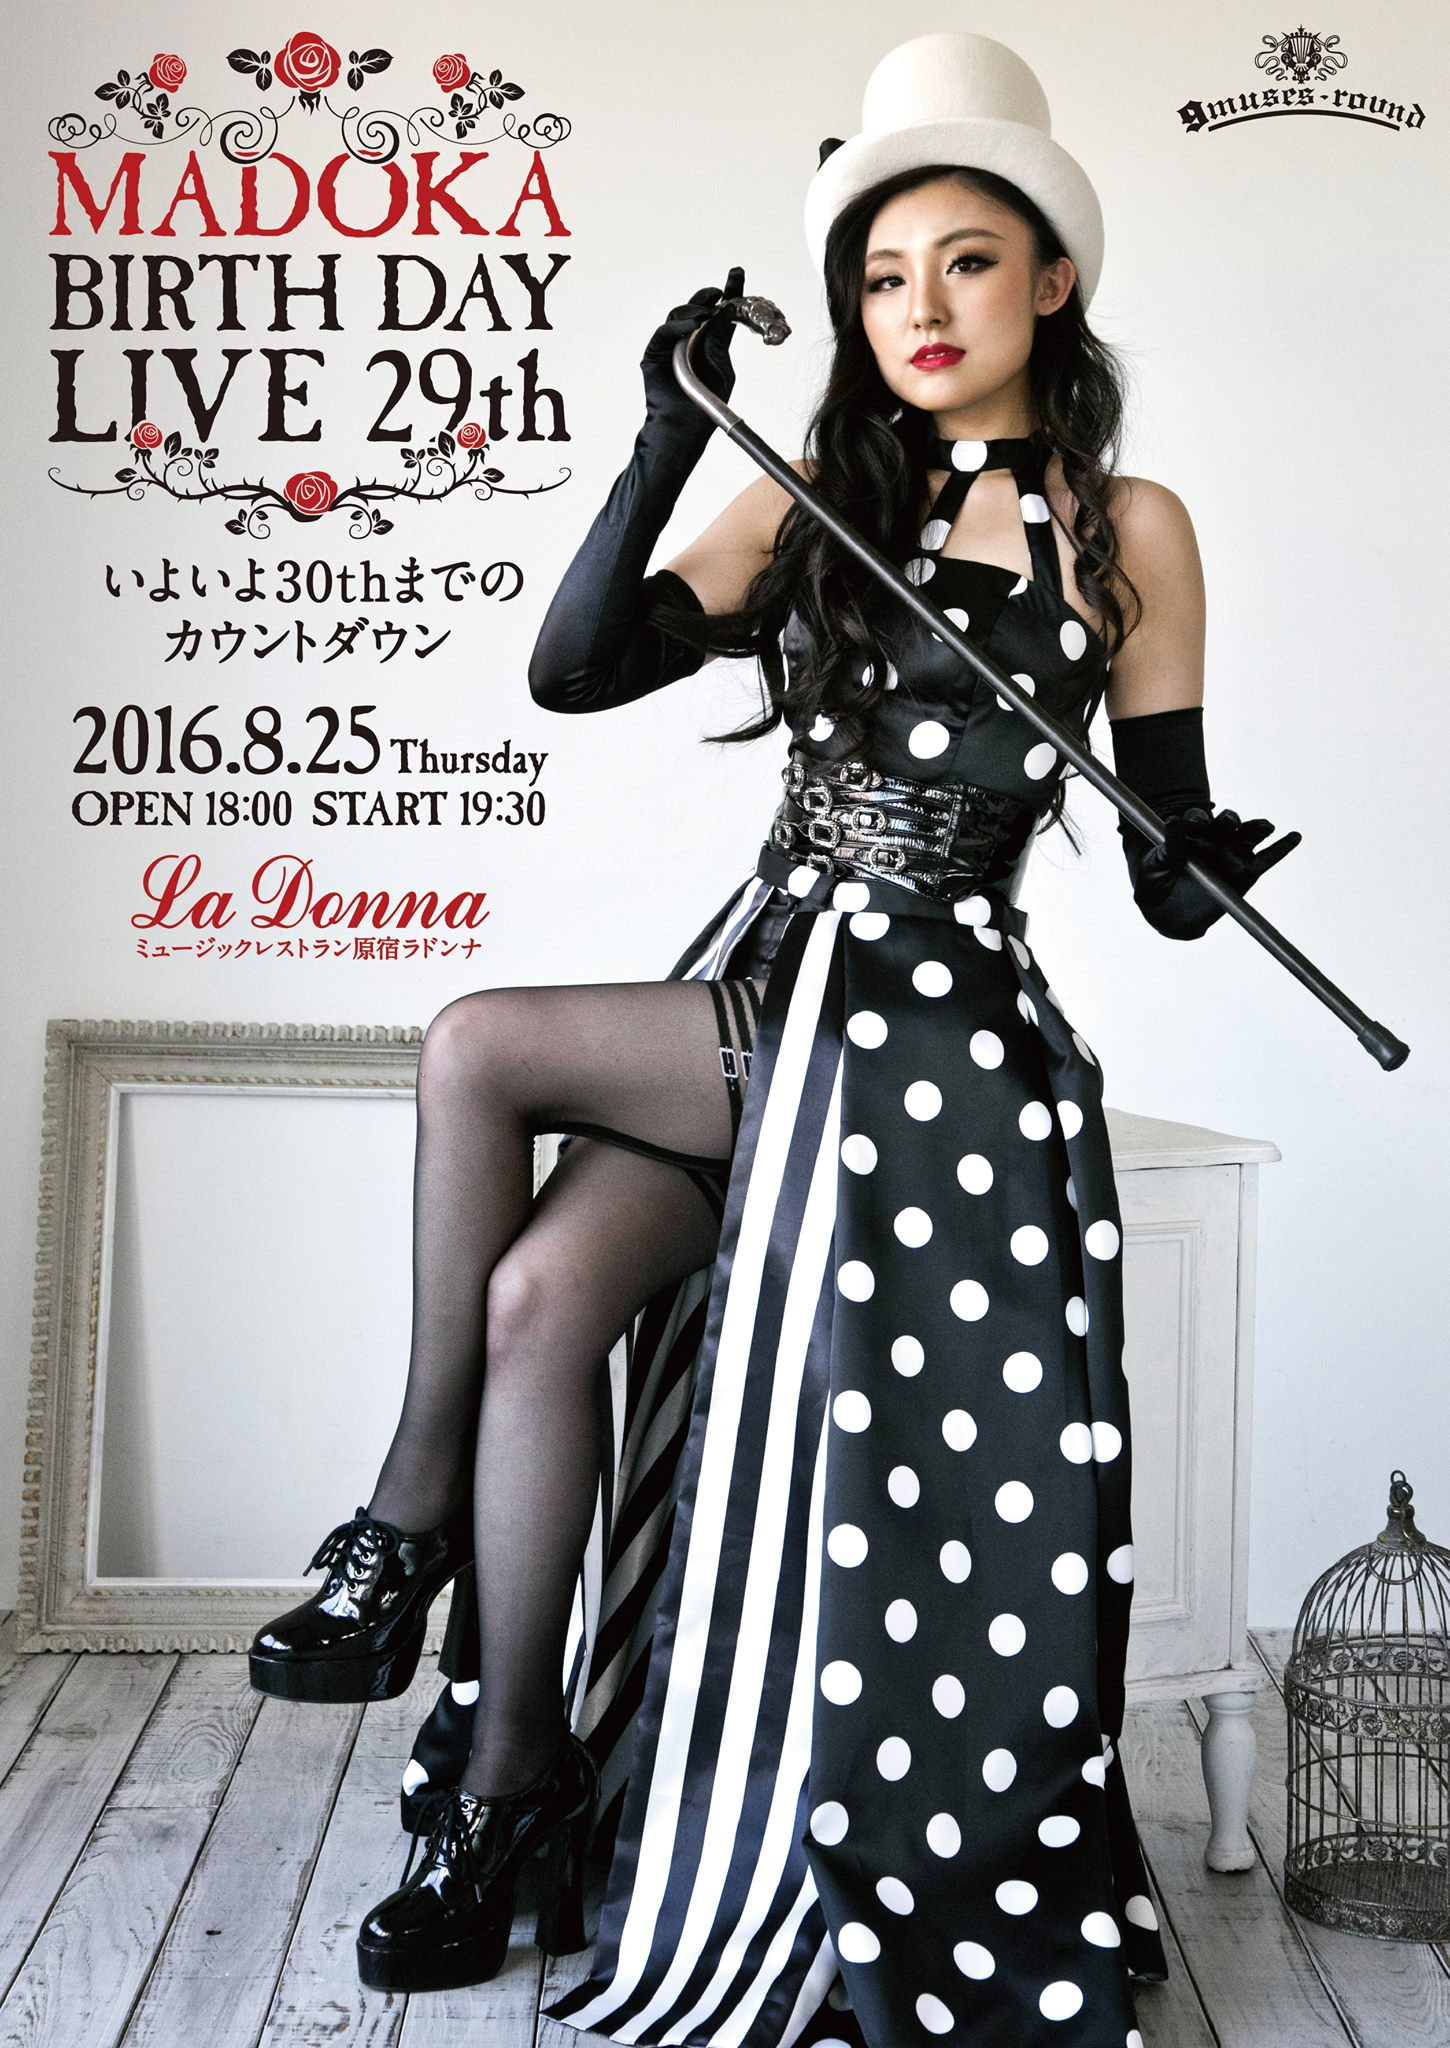 MADOKA BIRTHDAY LIVE 29th